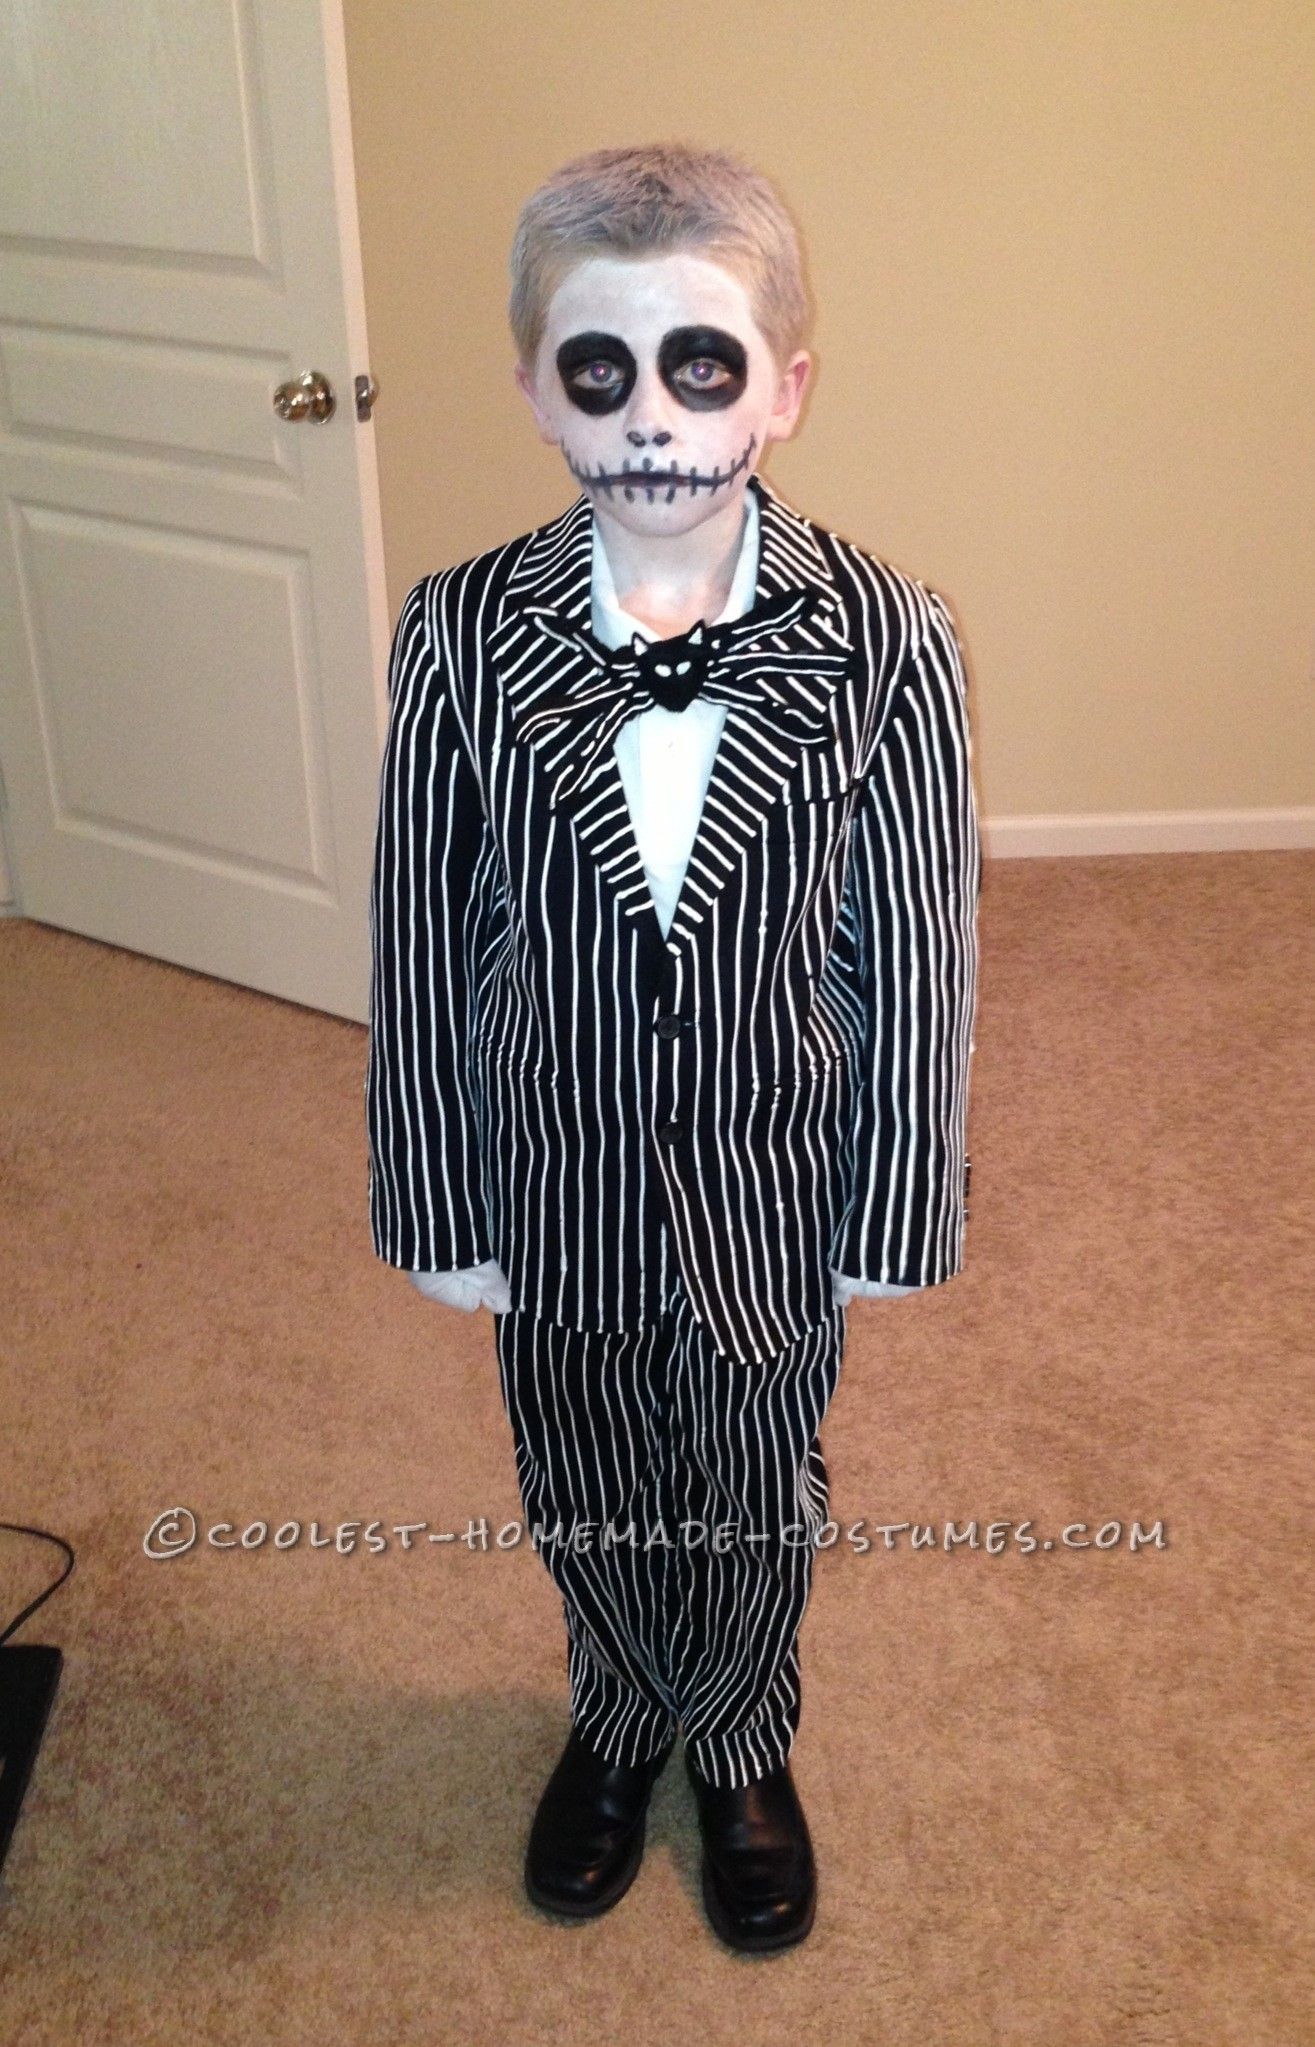 jack skellington costume - photo #16